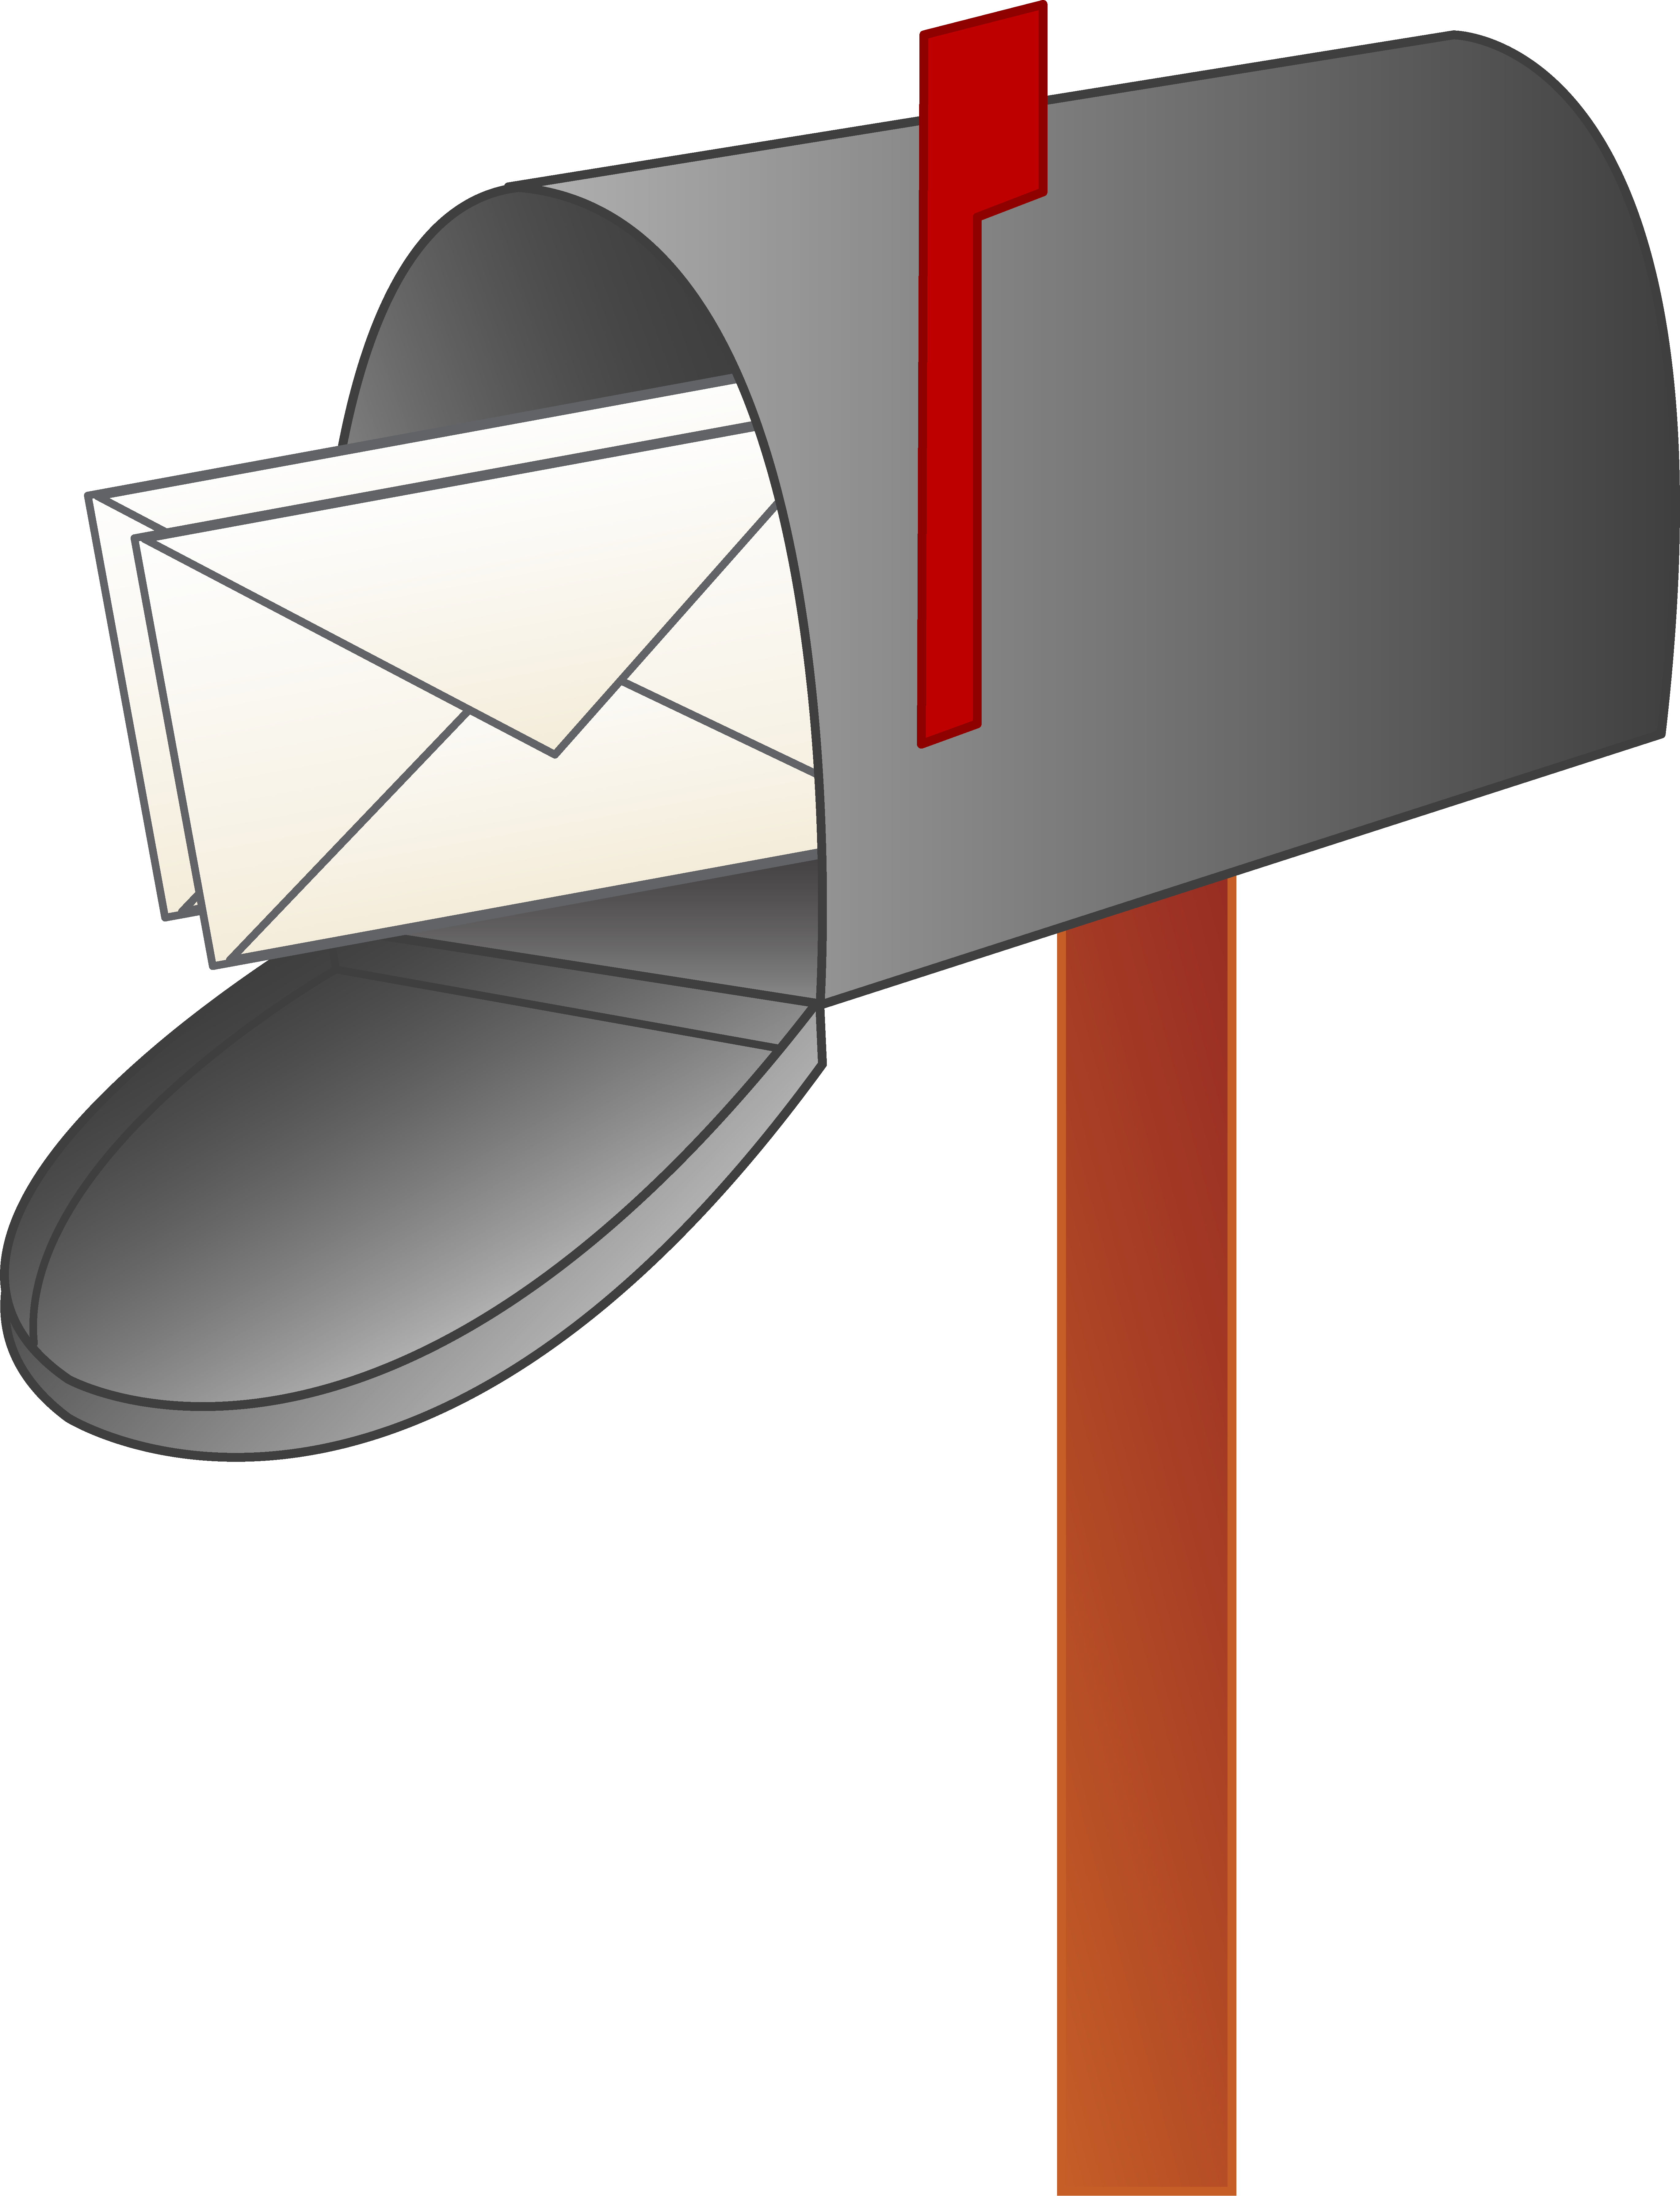 Cartoon . Mailbox clipart